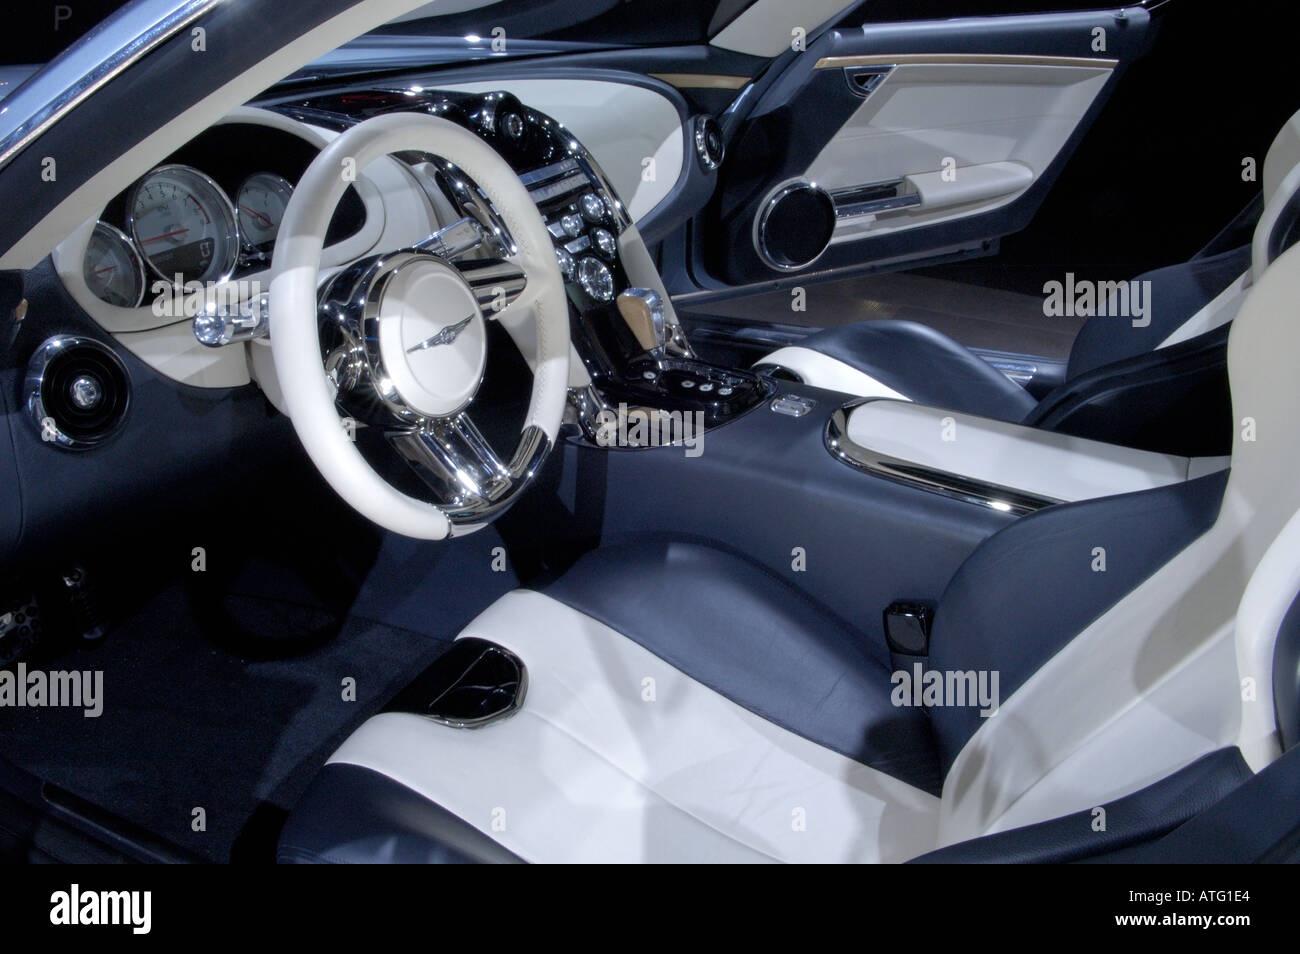 Chrysler Firepower concept car interior at the North American International Auto Show 2005